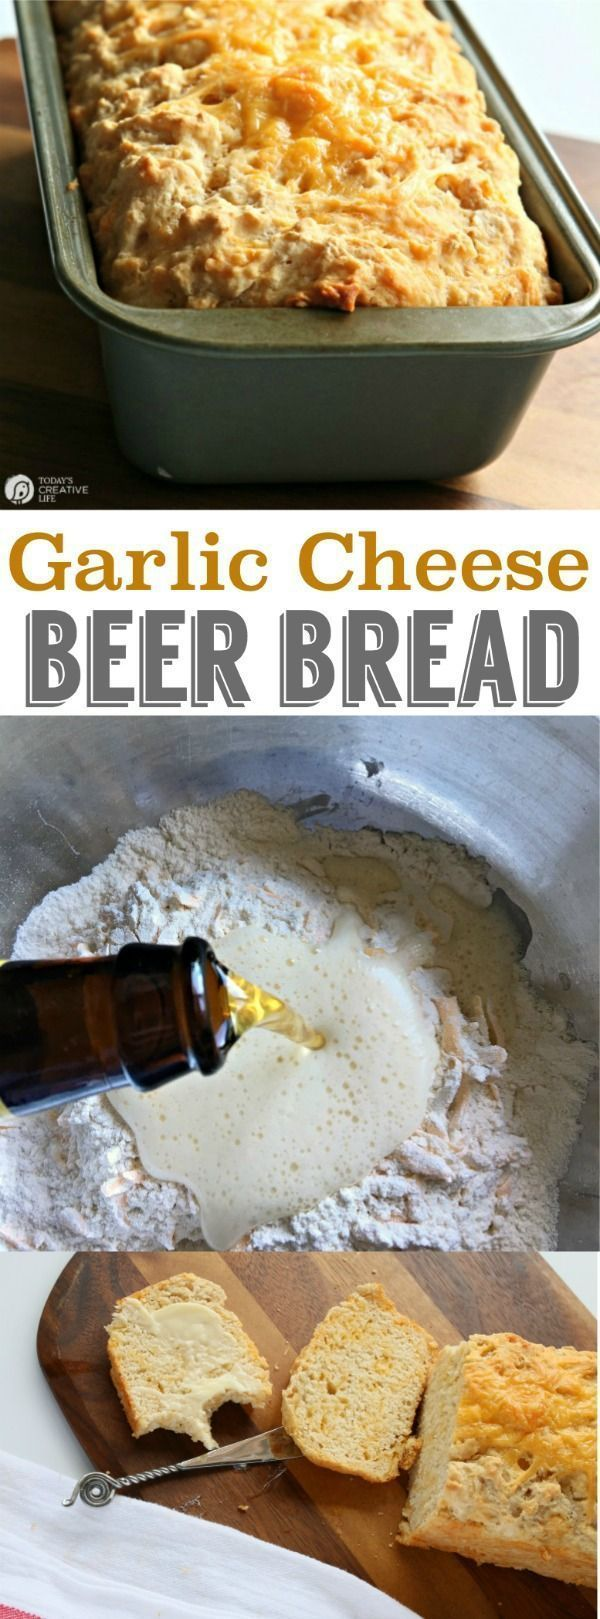 Beer Bread Recipe with Garlic and Cheese | Garlic cheese bread of any kind is delicious! This easy recipe is great with salads, or alone. Make it with craft microbrew or regular beer. Click on the photo for the recipe. http://TodaysCreativeLife.com #beerandcheese